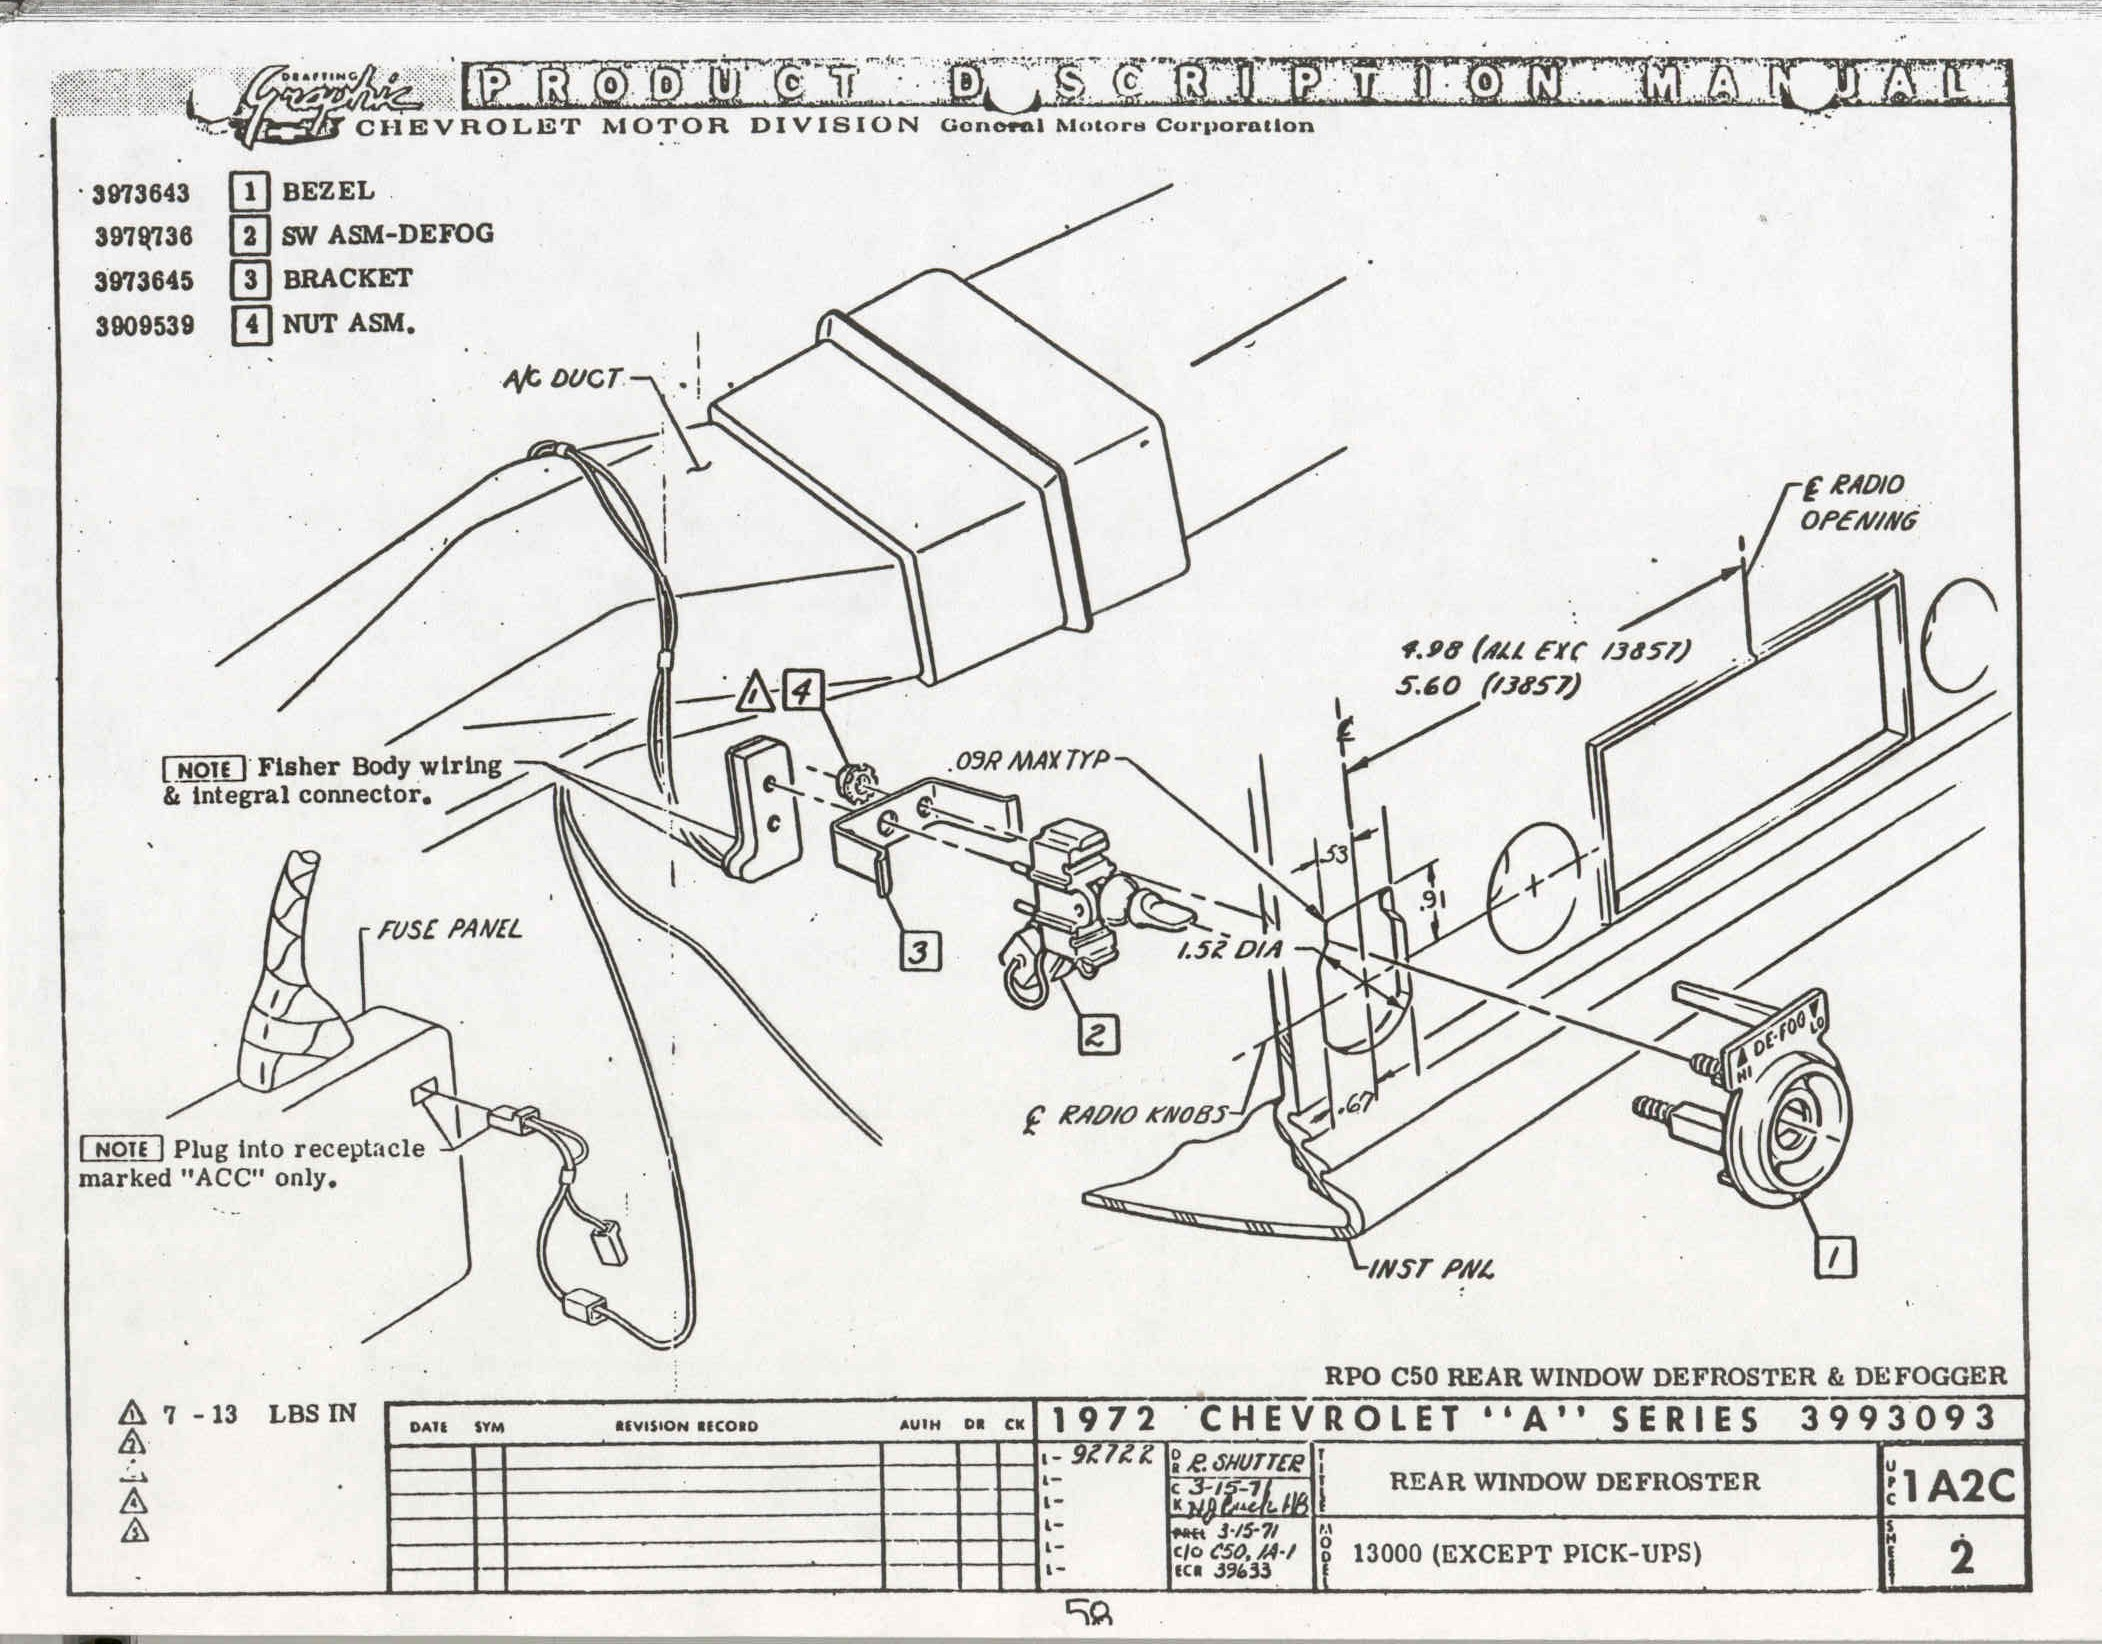 1969 Camaro Heater Duct Diagram, 1969, Free Engine Image